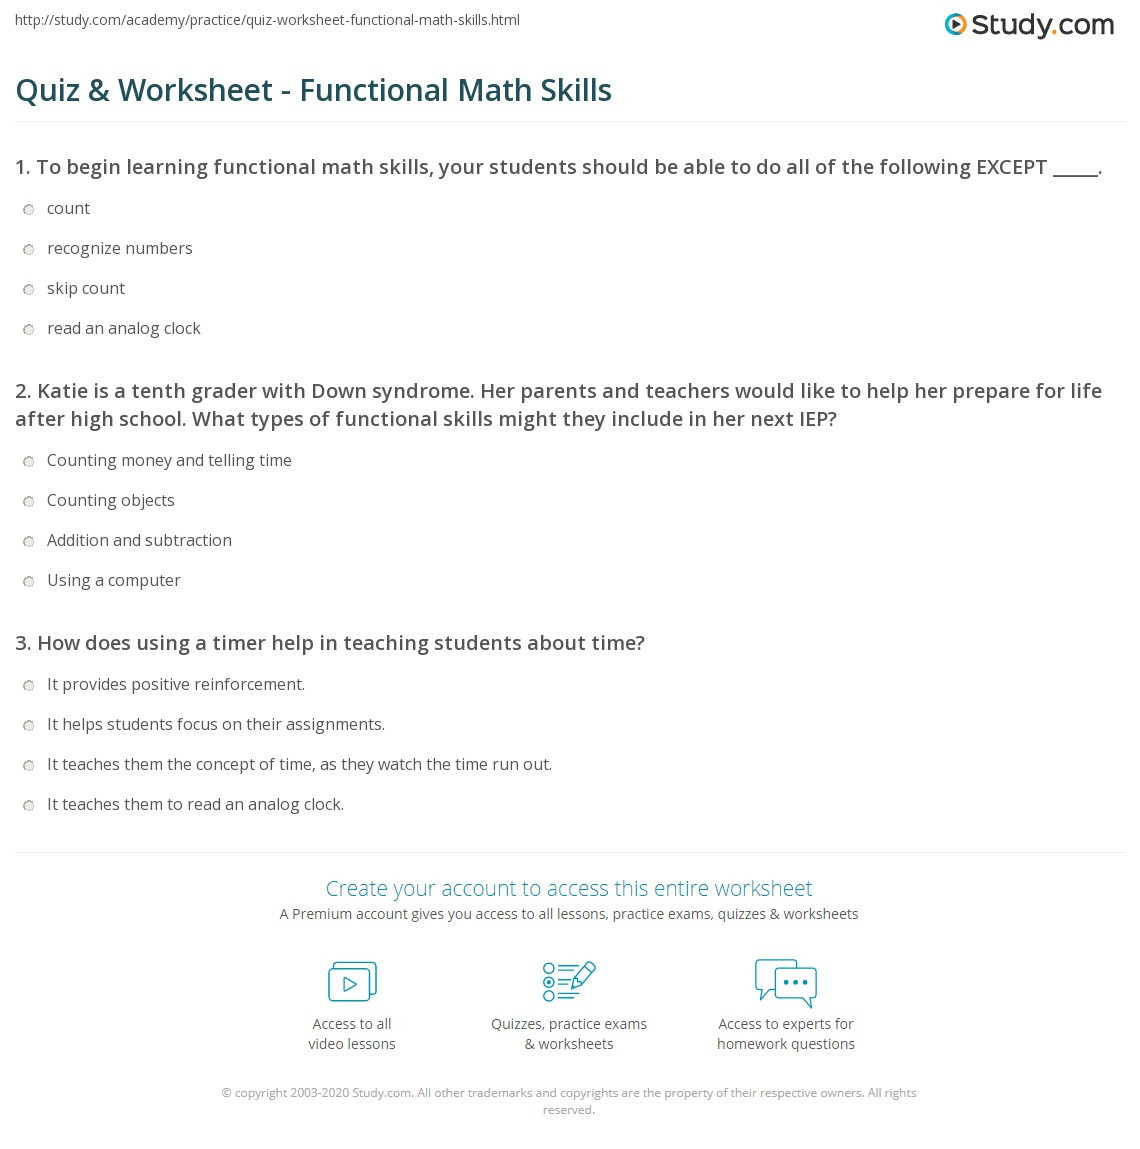 Functional Maths Worksheets Quiz & Worksheet Functional Math Skills